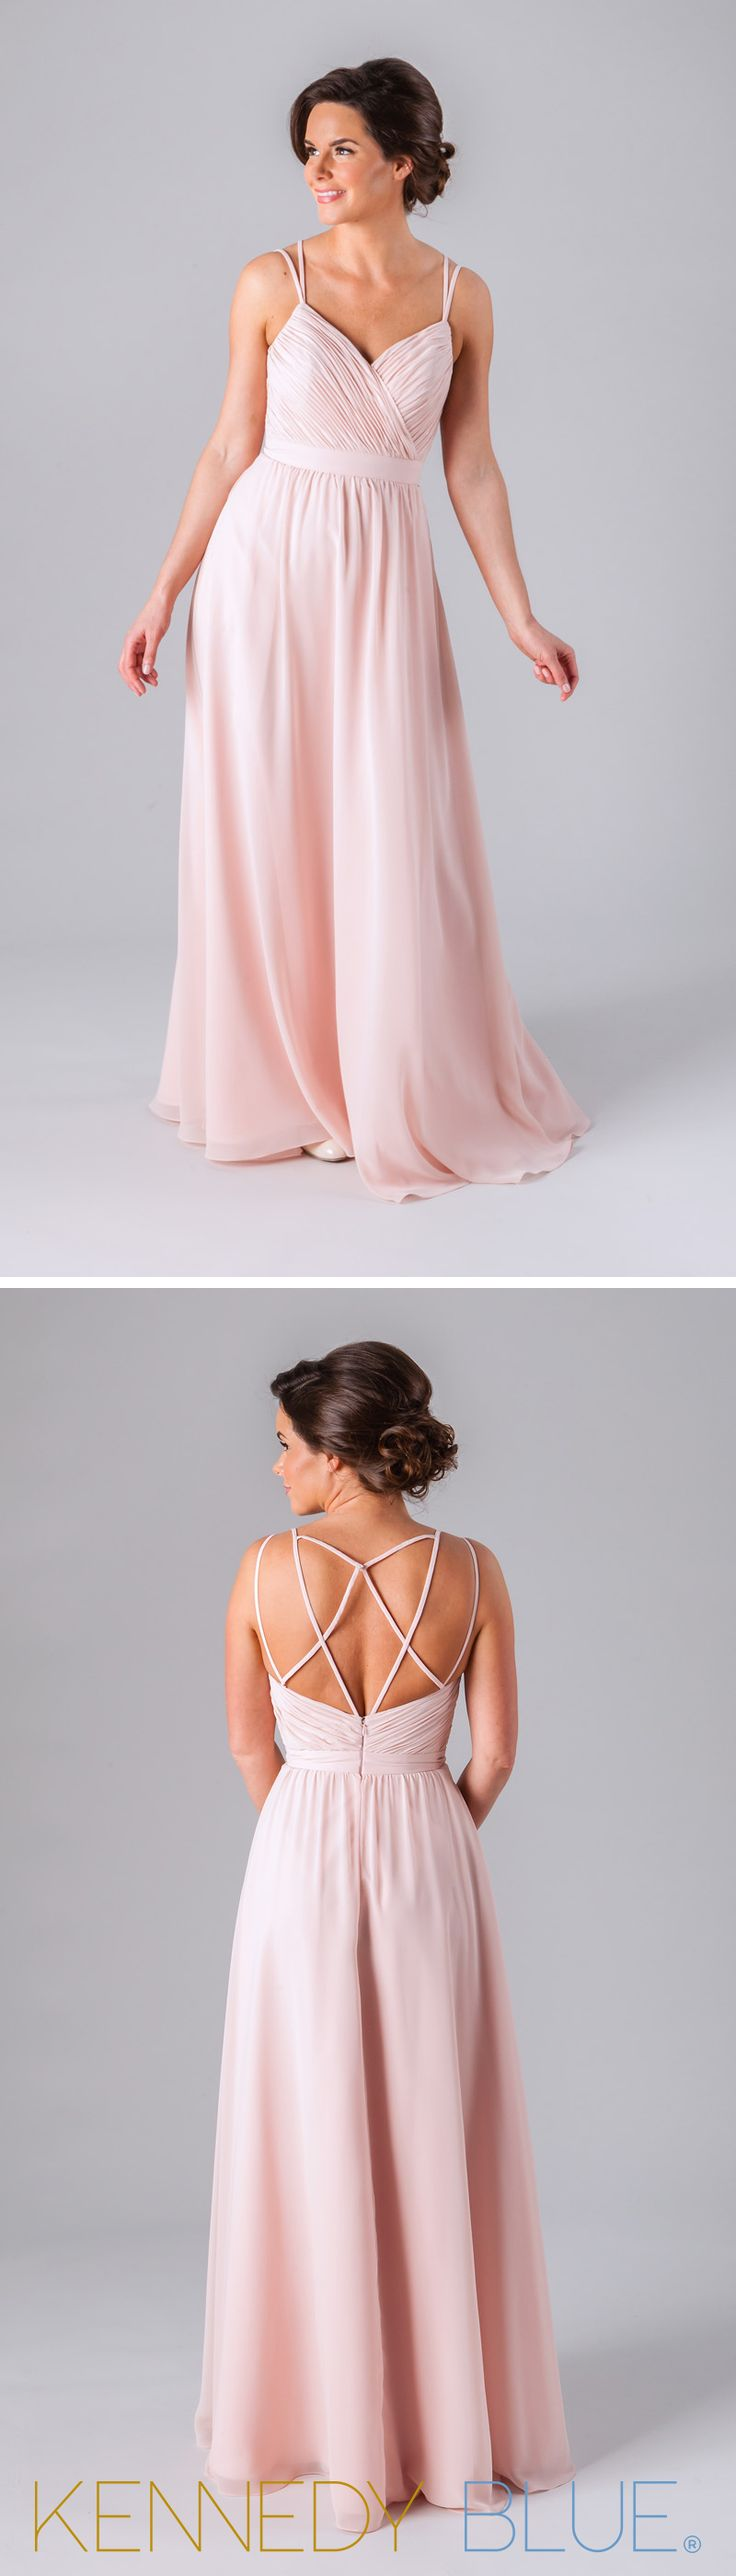 141 best bridesmaids dresses images on pinterest marriage mackenzie chiffon bridesmaid dresseswedding ombrellifo Choice Image